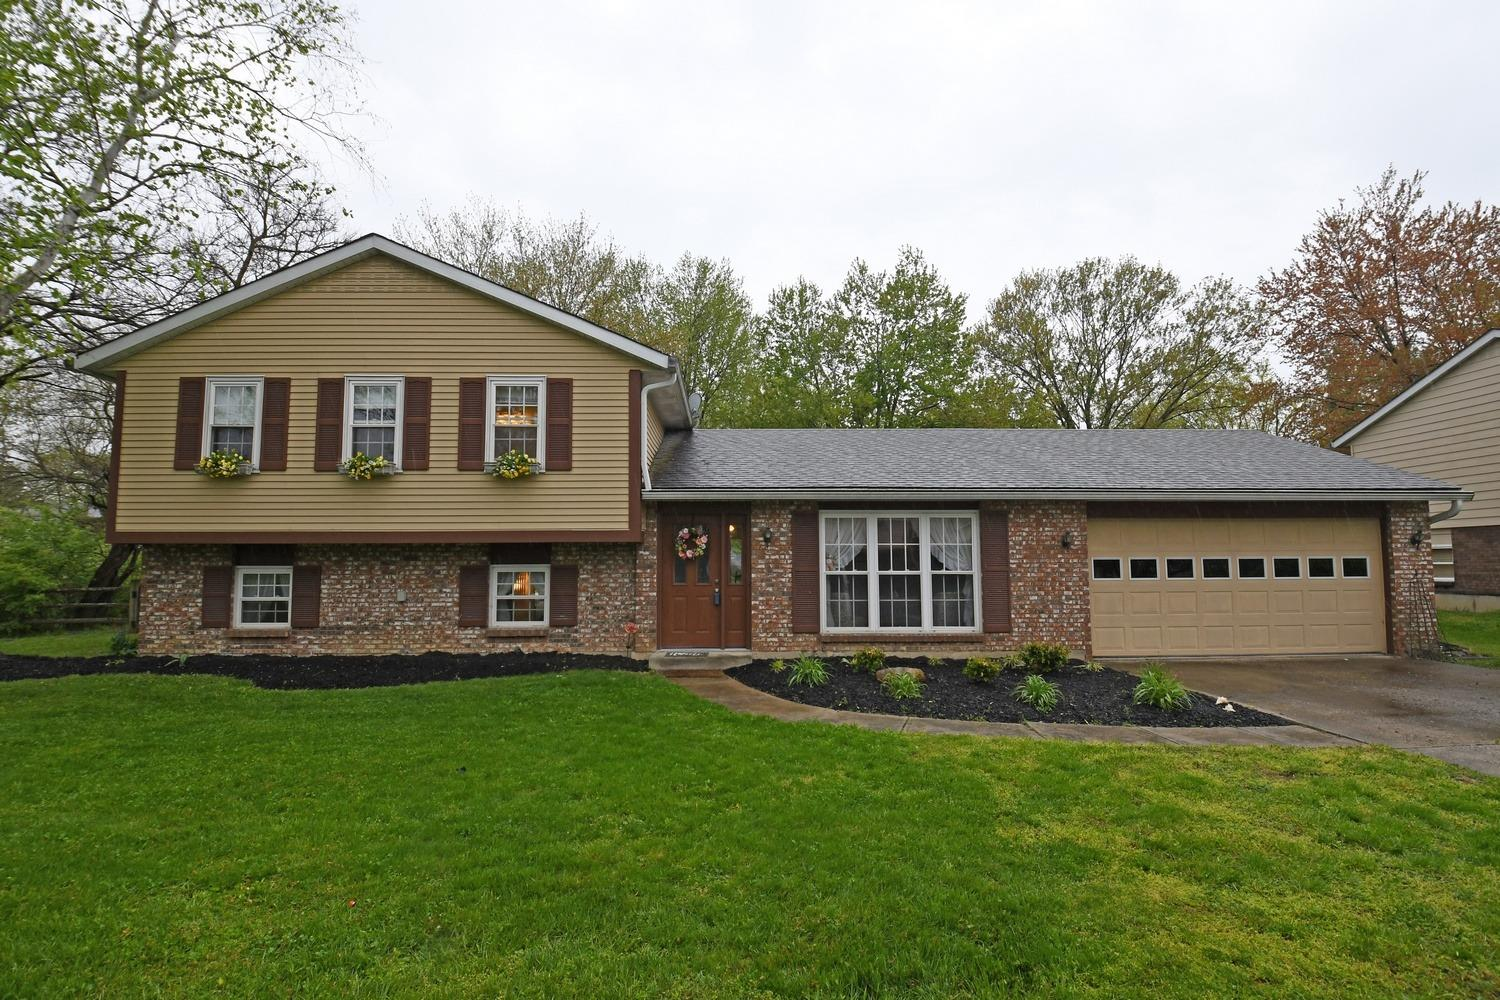 Photo of 754 Anthony Lane, Mason, OH 45040